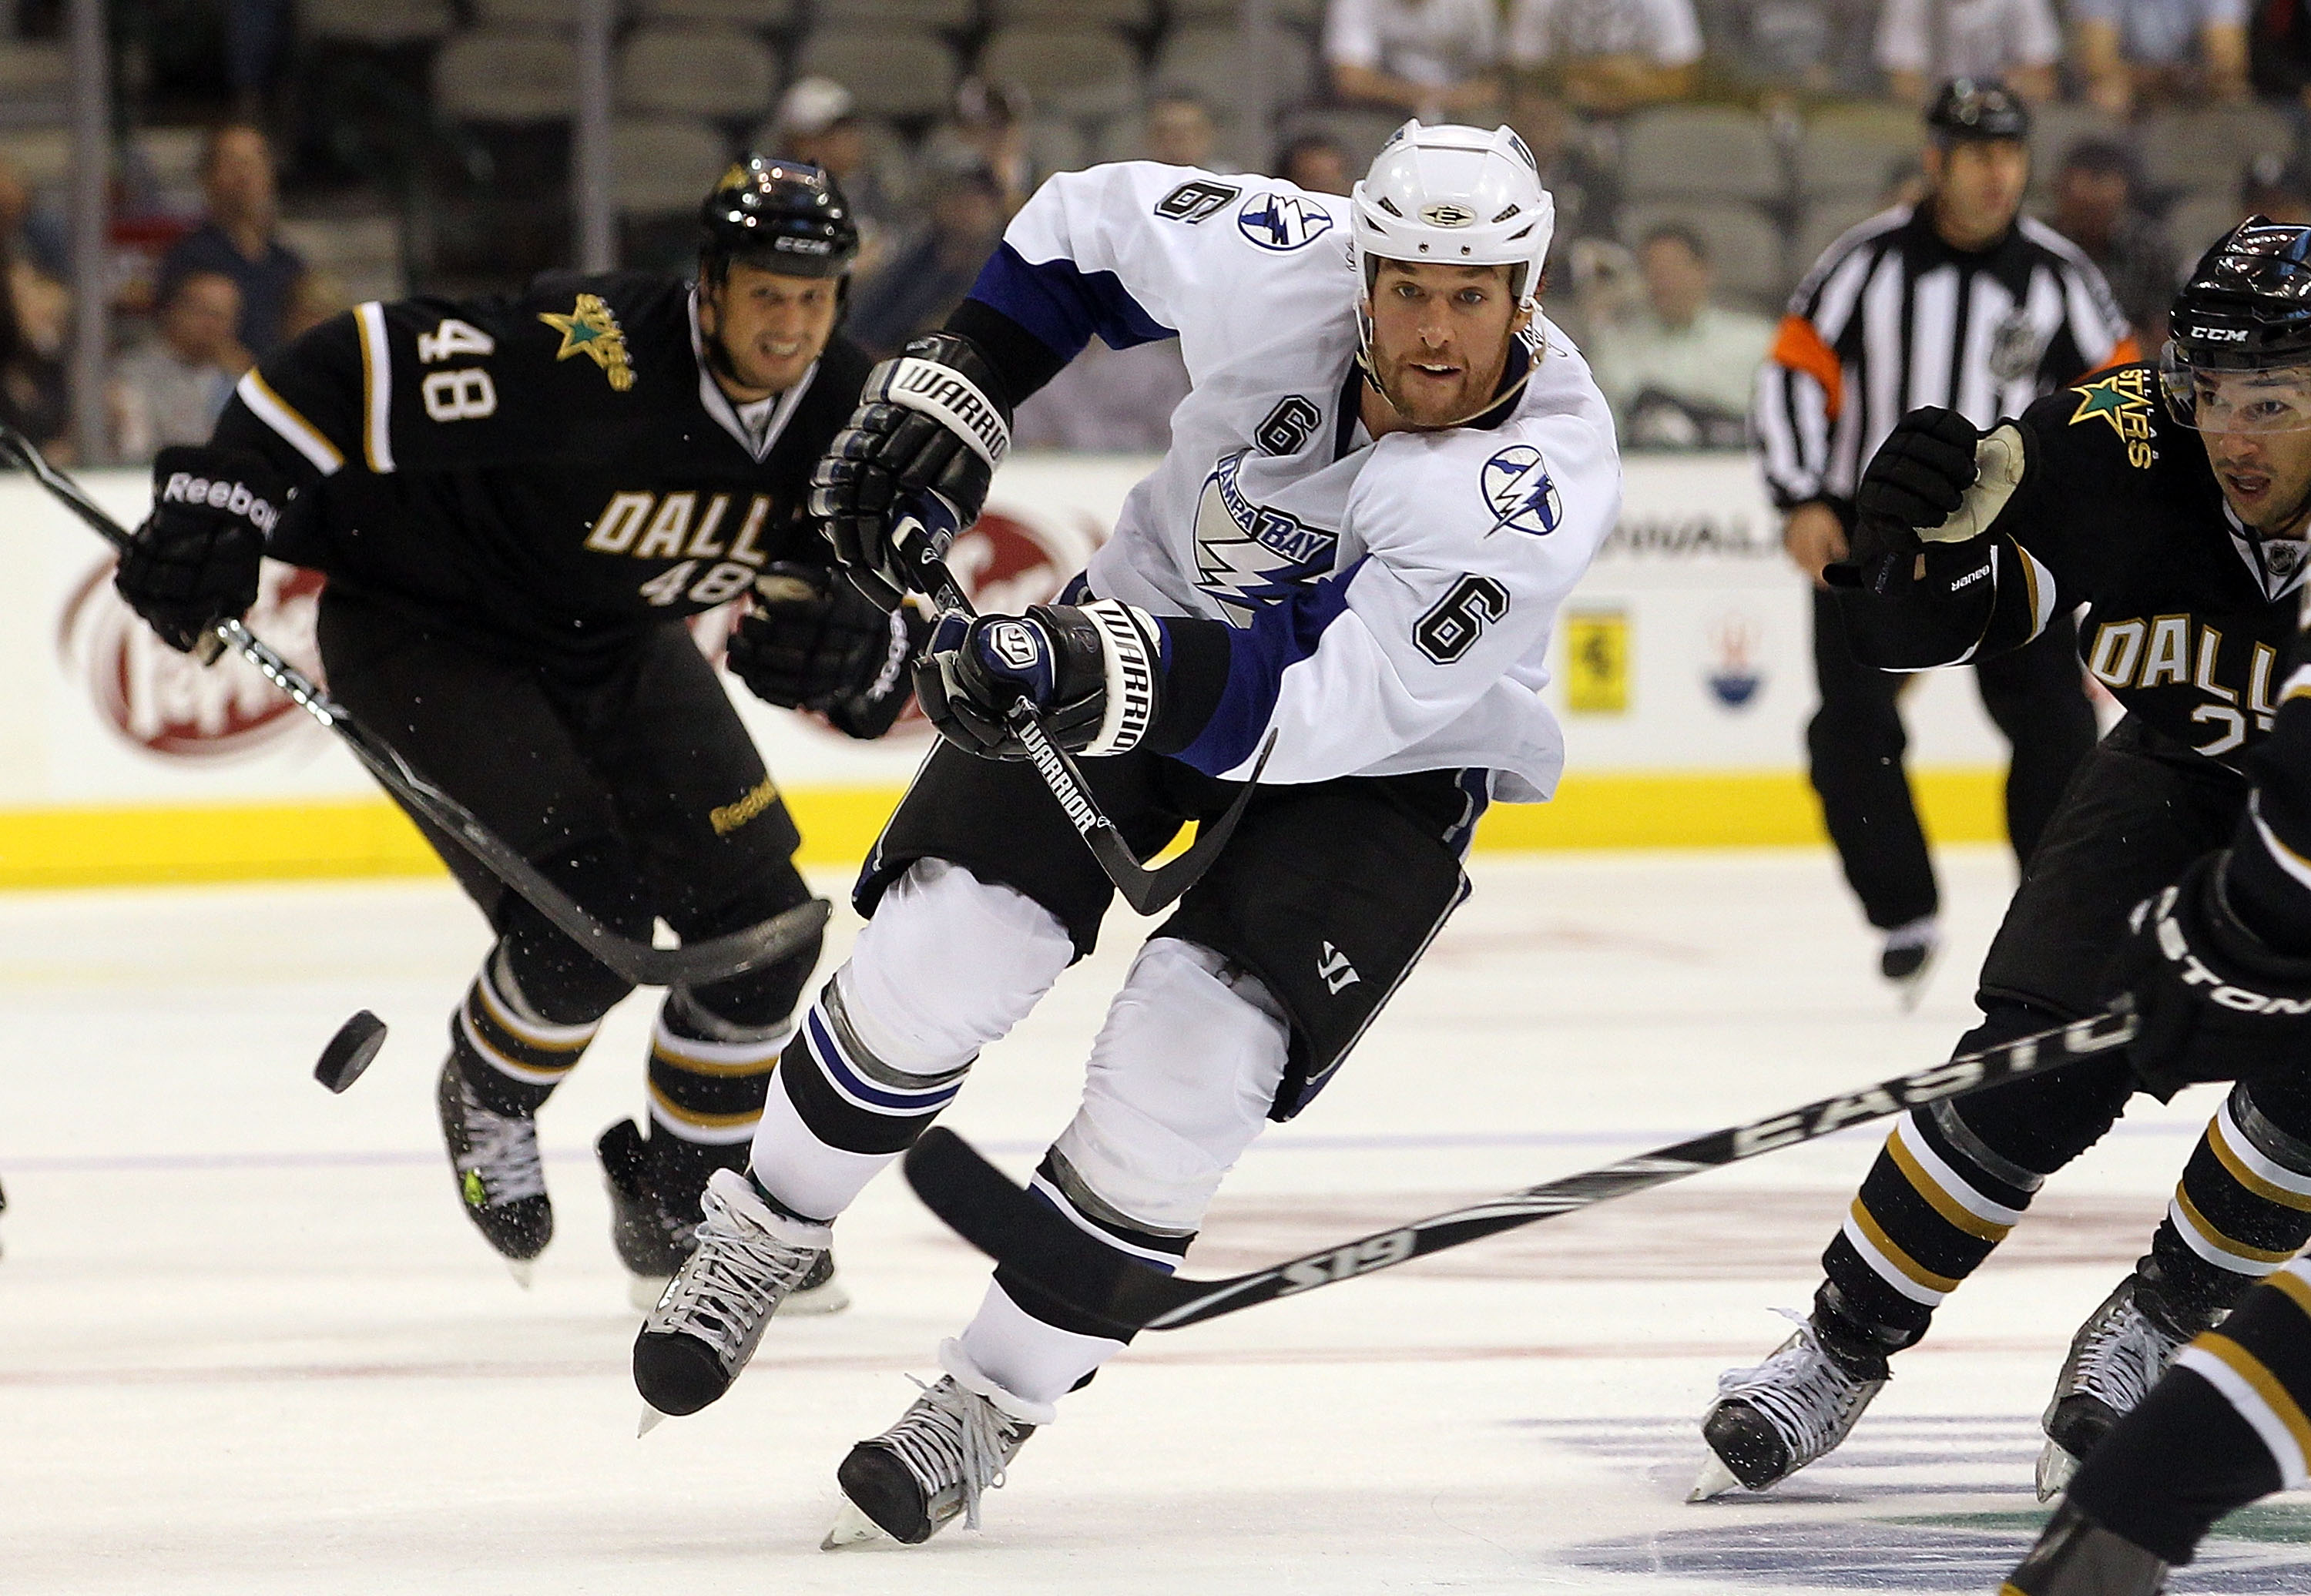 DALLAS - SEPTEMBER 21:  Right wing Ryan Malone #6 of the Tampa Bay Lightning at American Airlines Center on September 21, 2010 in Dallas, Texas.  (Photo by Ronald Martinez/Getty Images)